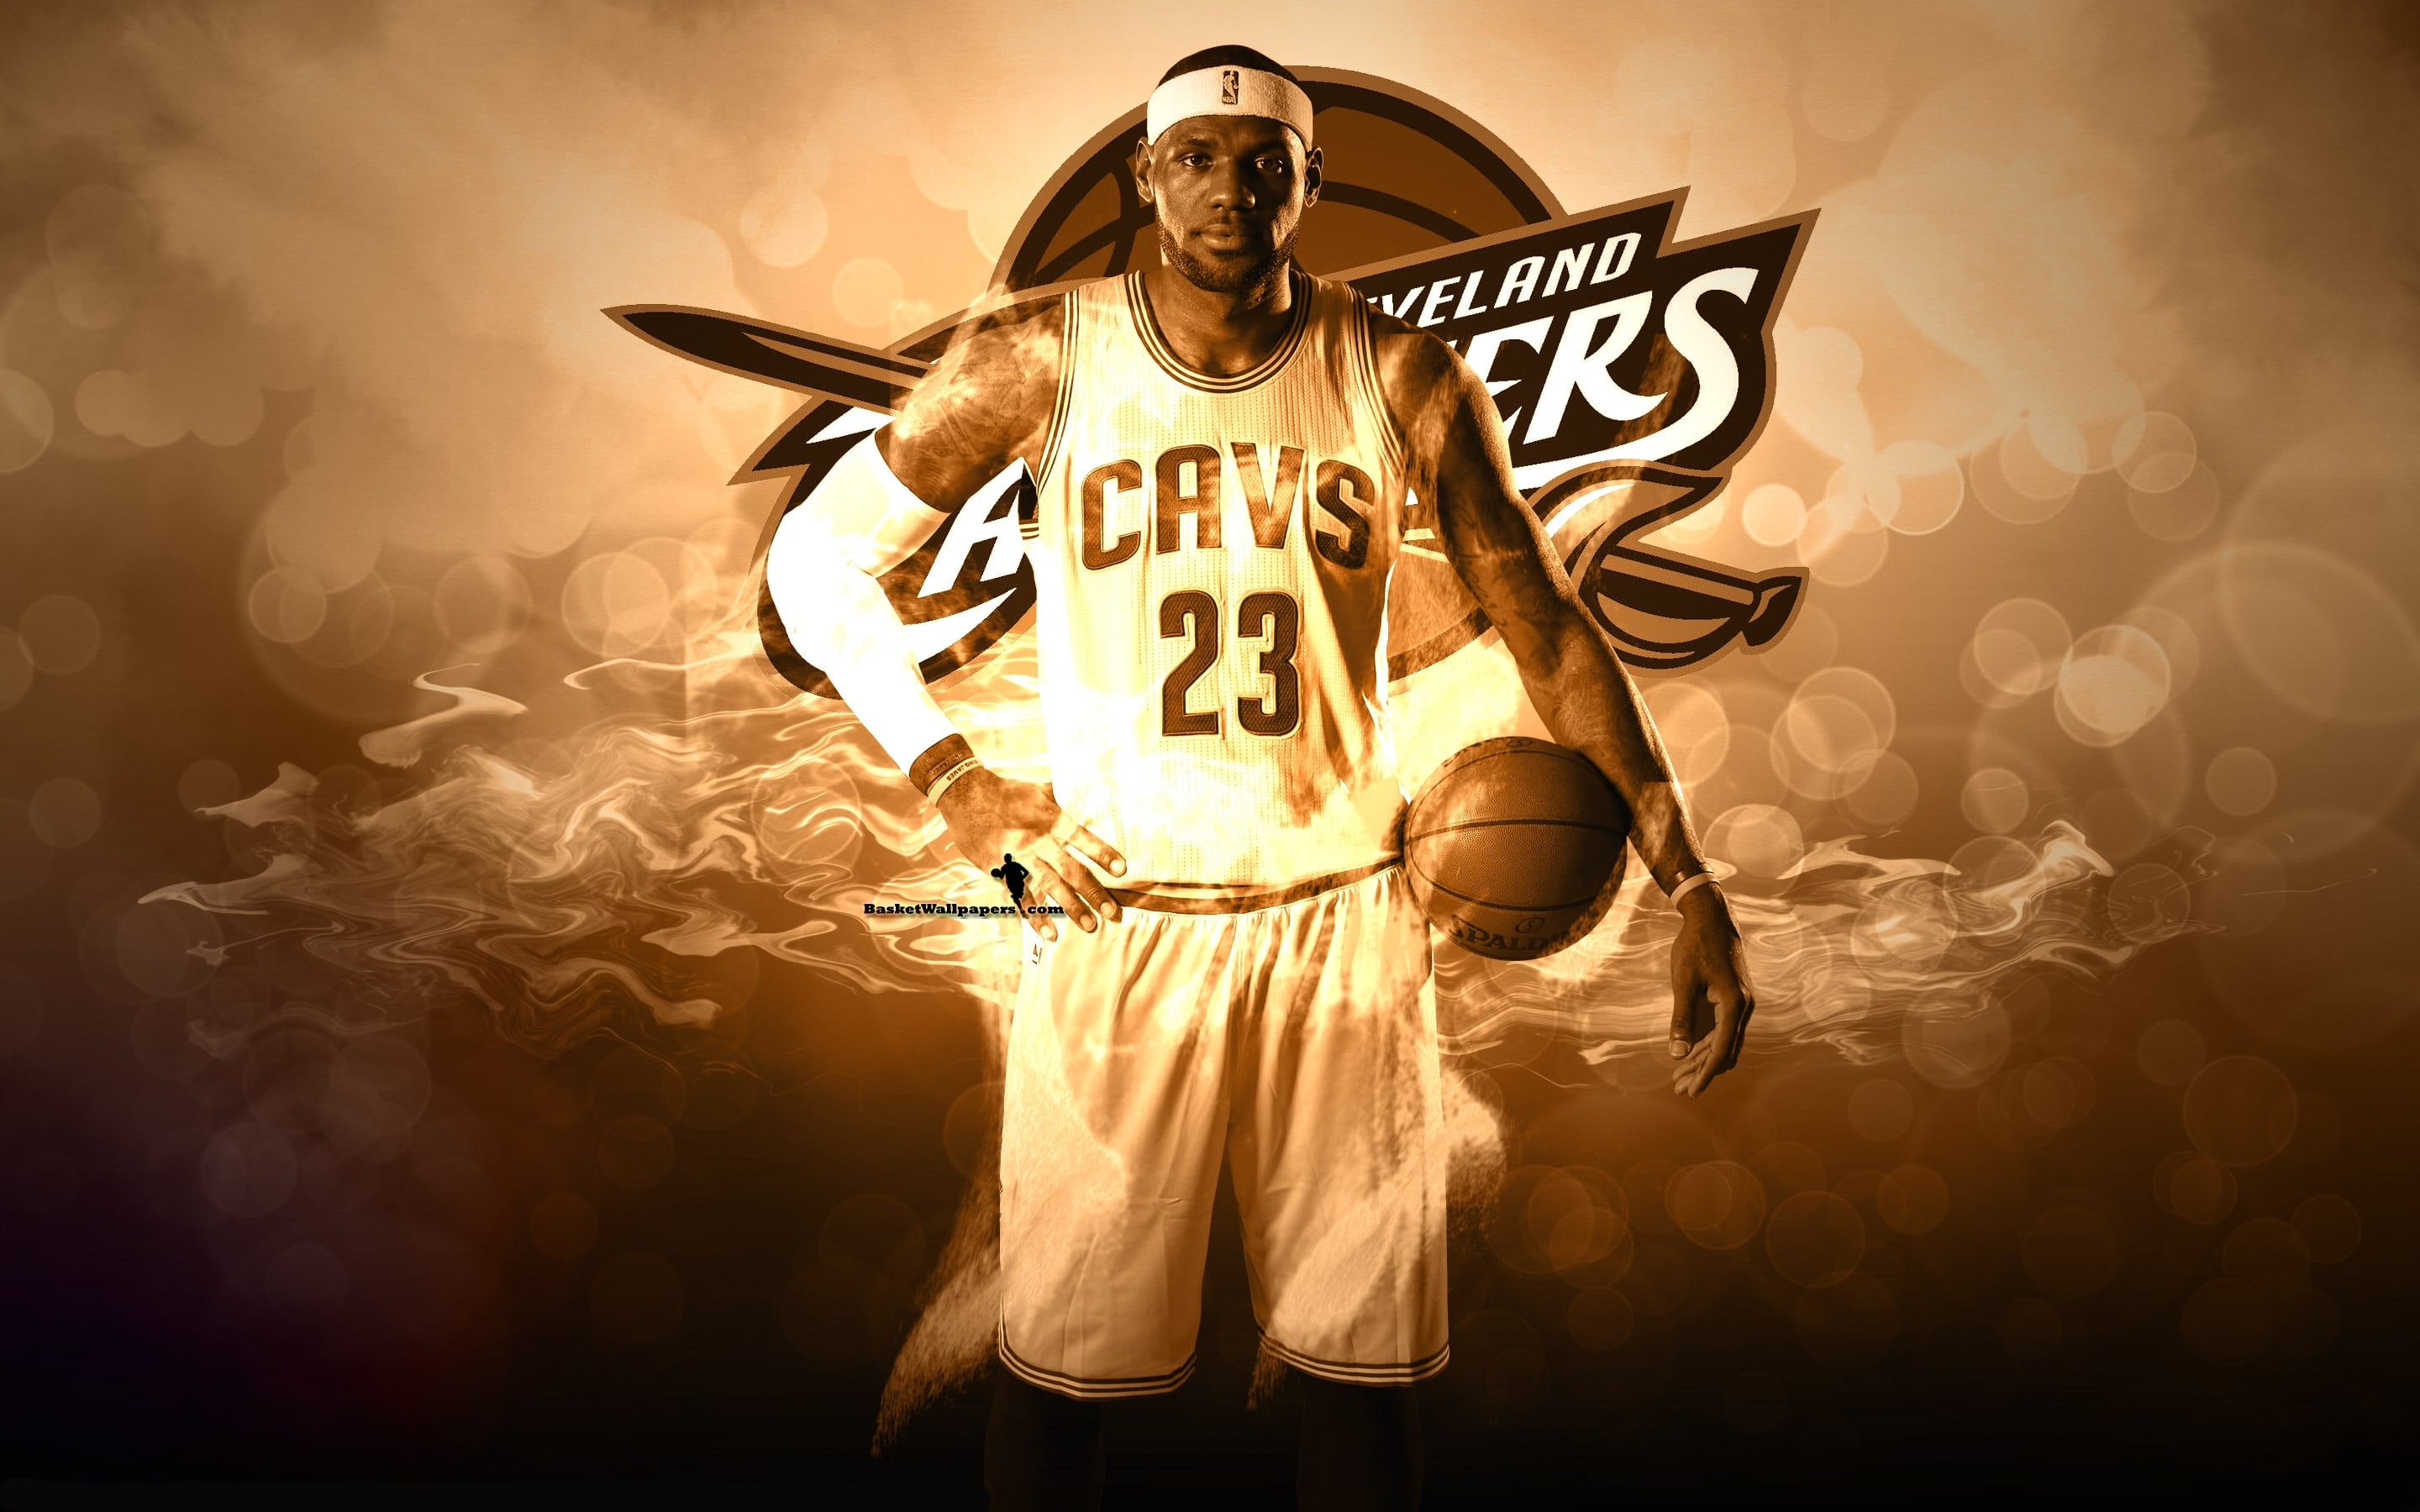 Lebron James Wallpapers hd